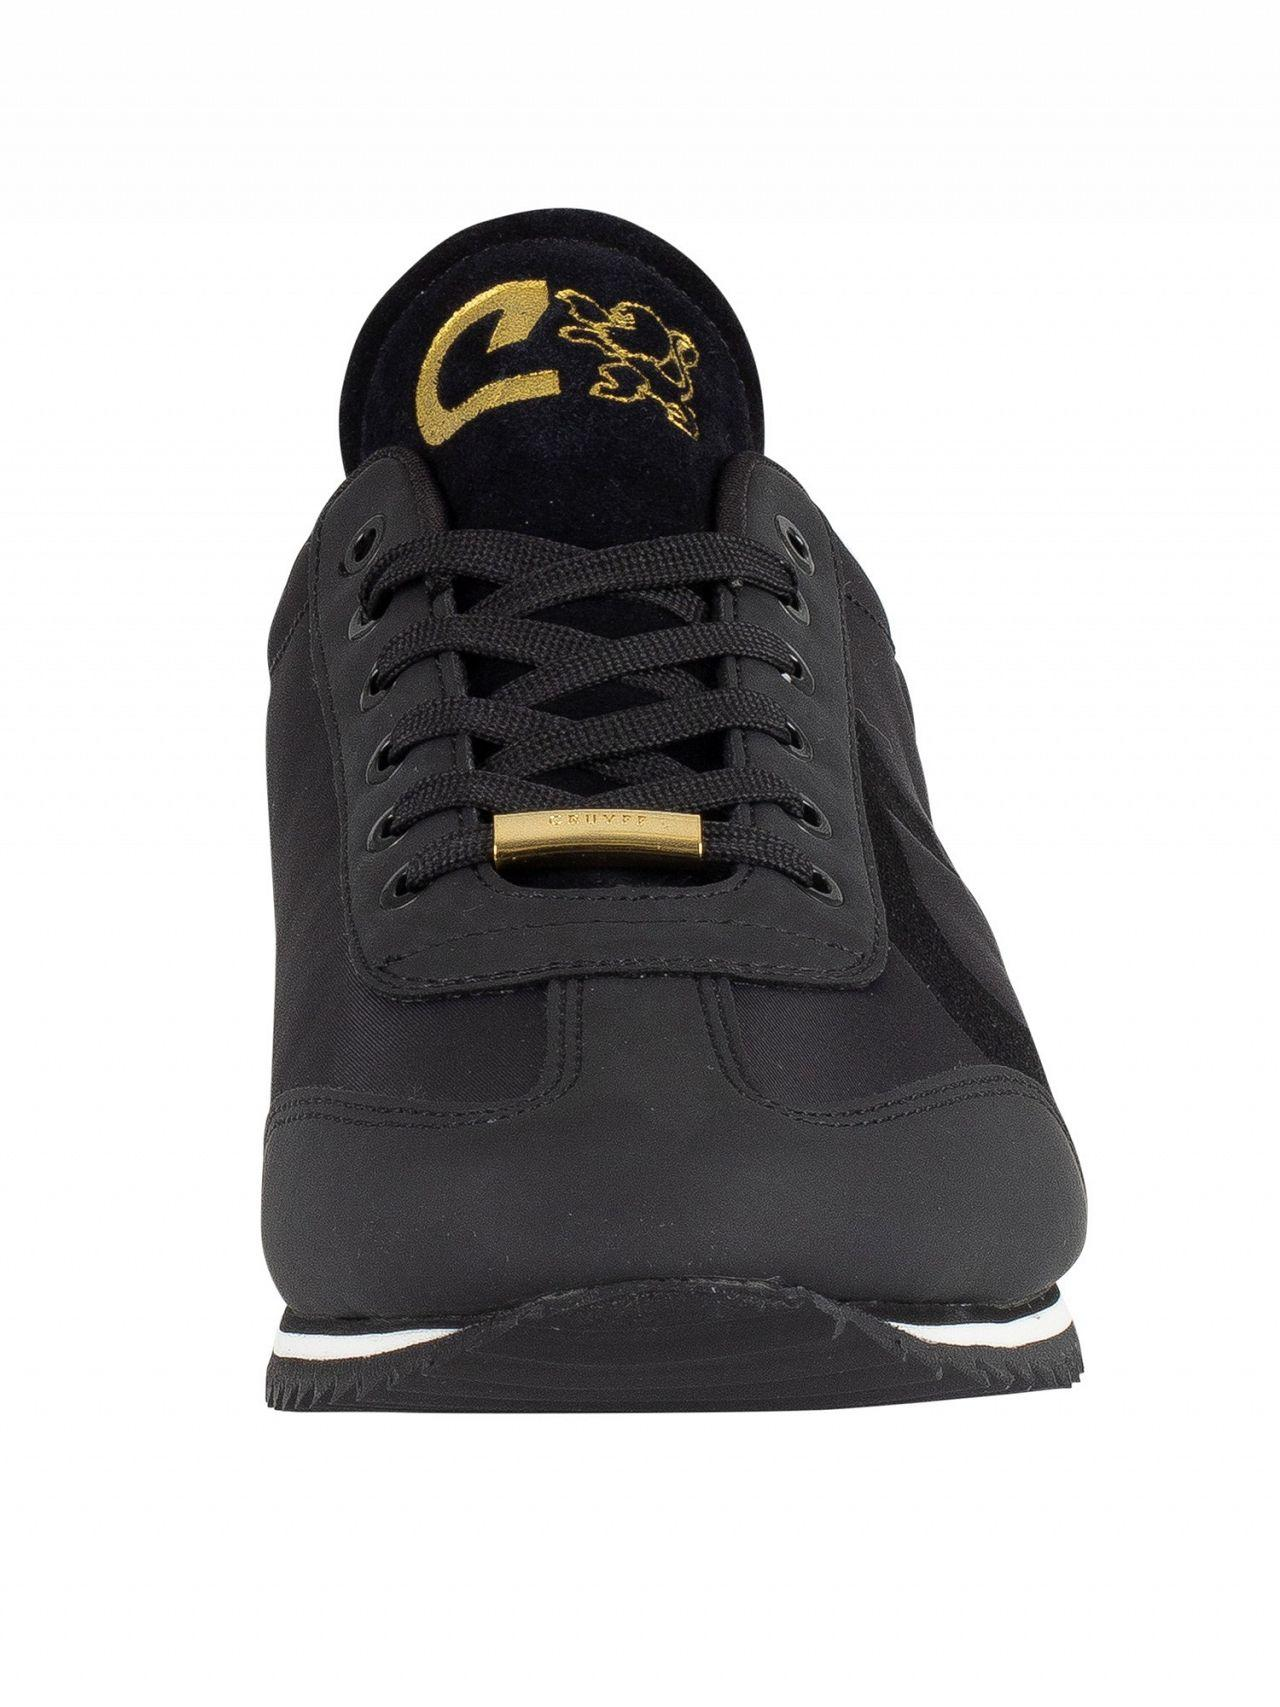 Cruyff black and gold trainers dragon michael phelps steroids